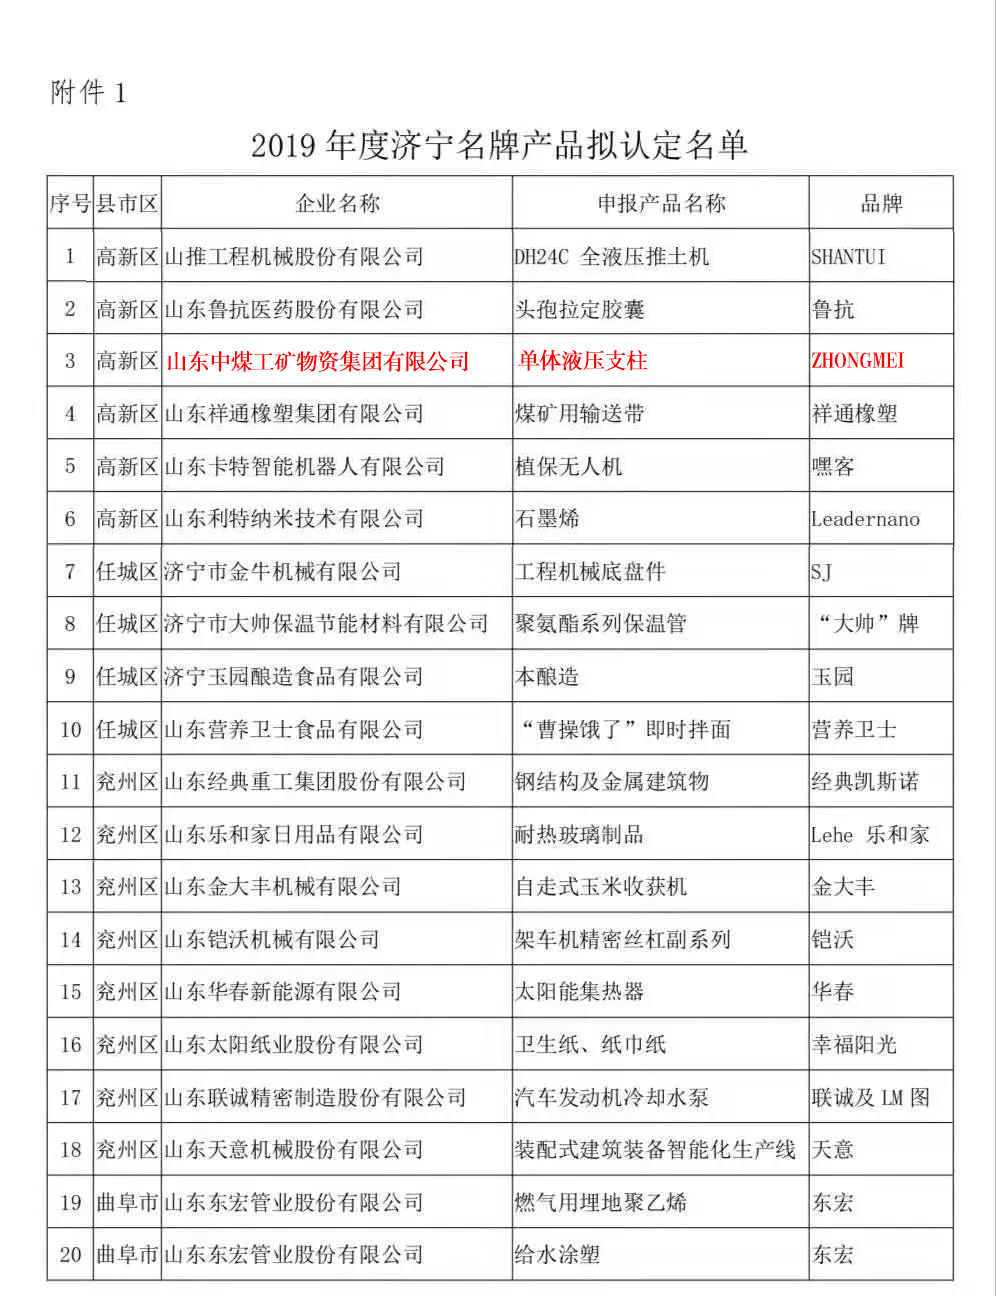 Warm Congratulations To China Coal Group'S Mining Single Hydraulic Props Are Rated As Jining Famous Brand Products Of 2019